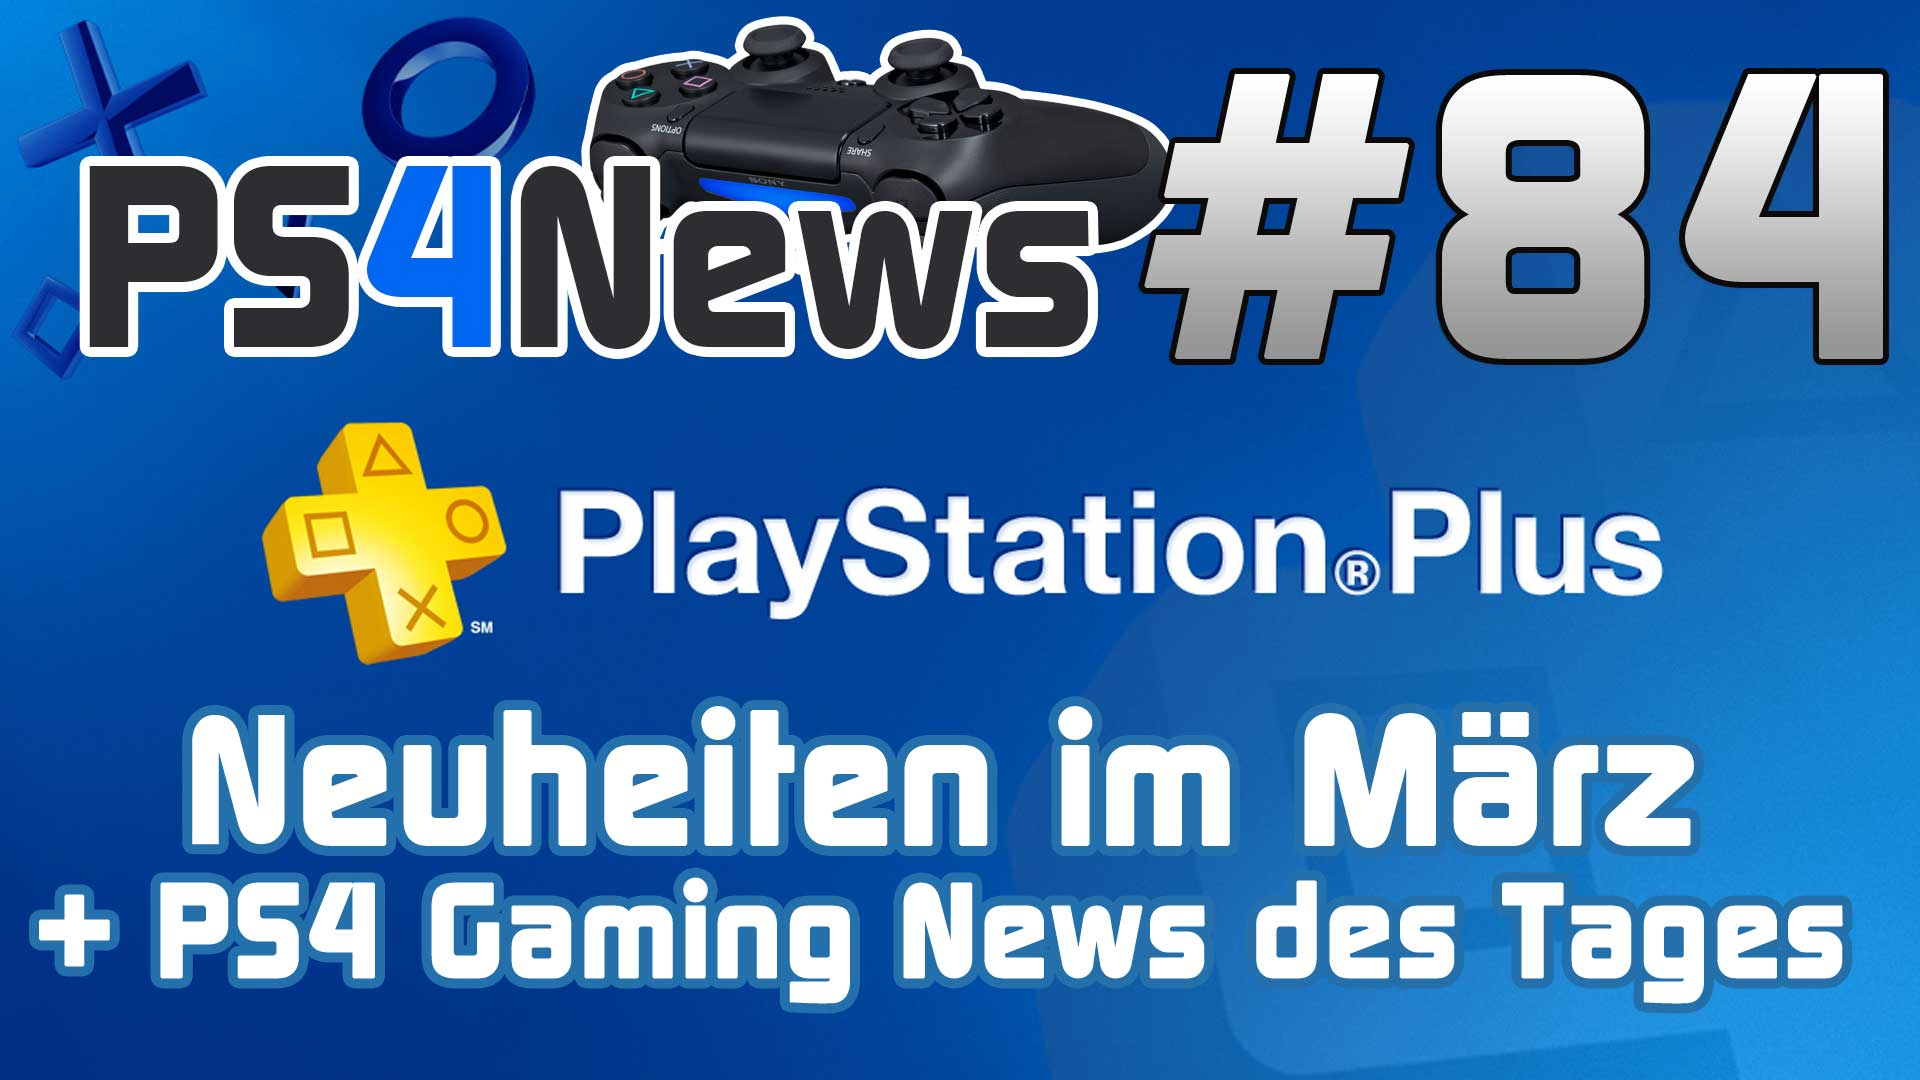 PlayStation Plus Neuheiten März 2014